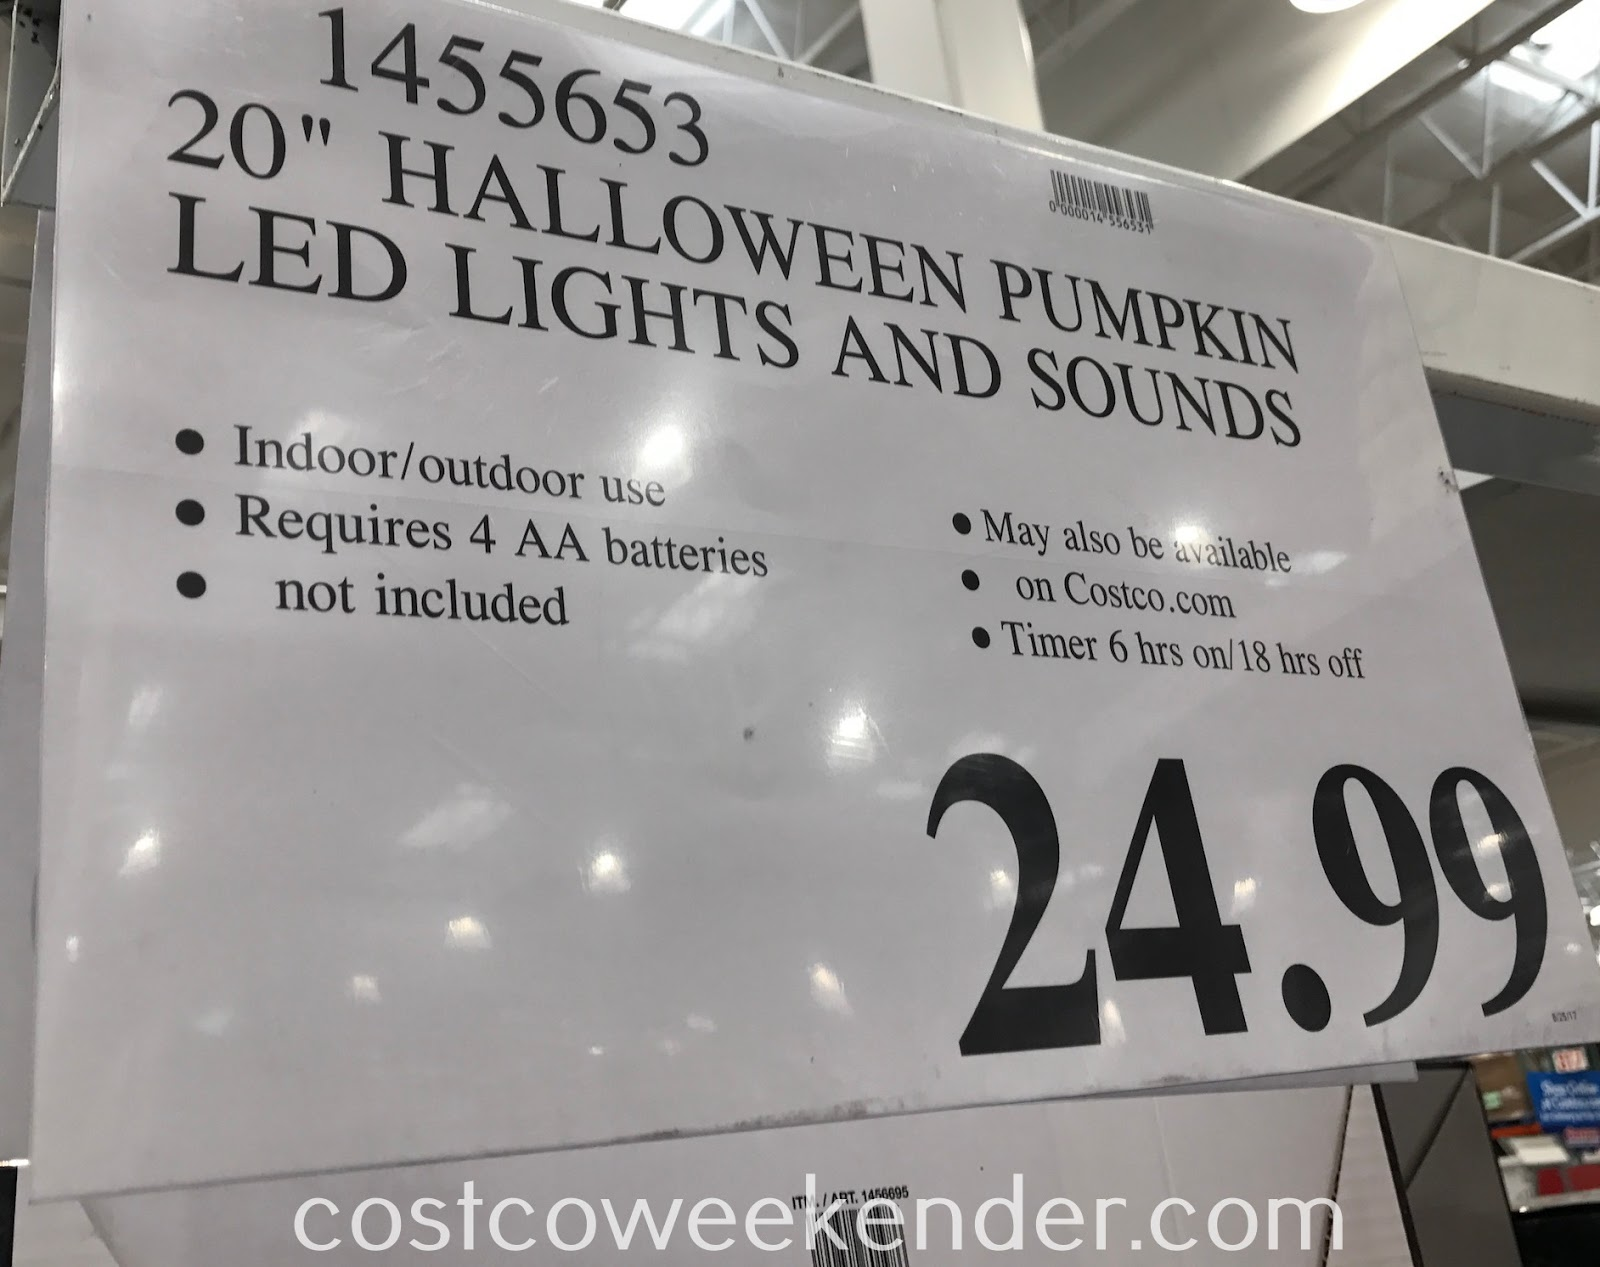 Deal for the Halloween Pumpkin with Yellow LED Flickering Lights at Costco